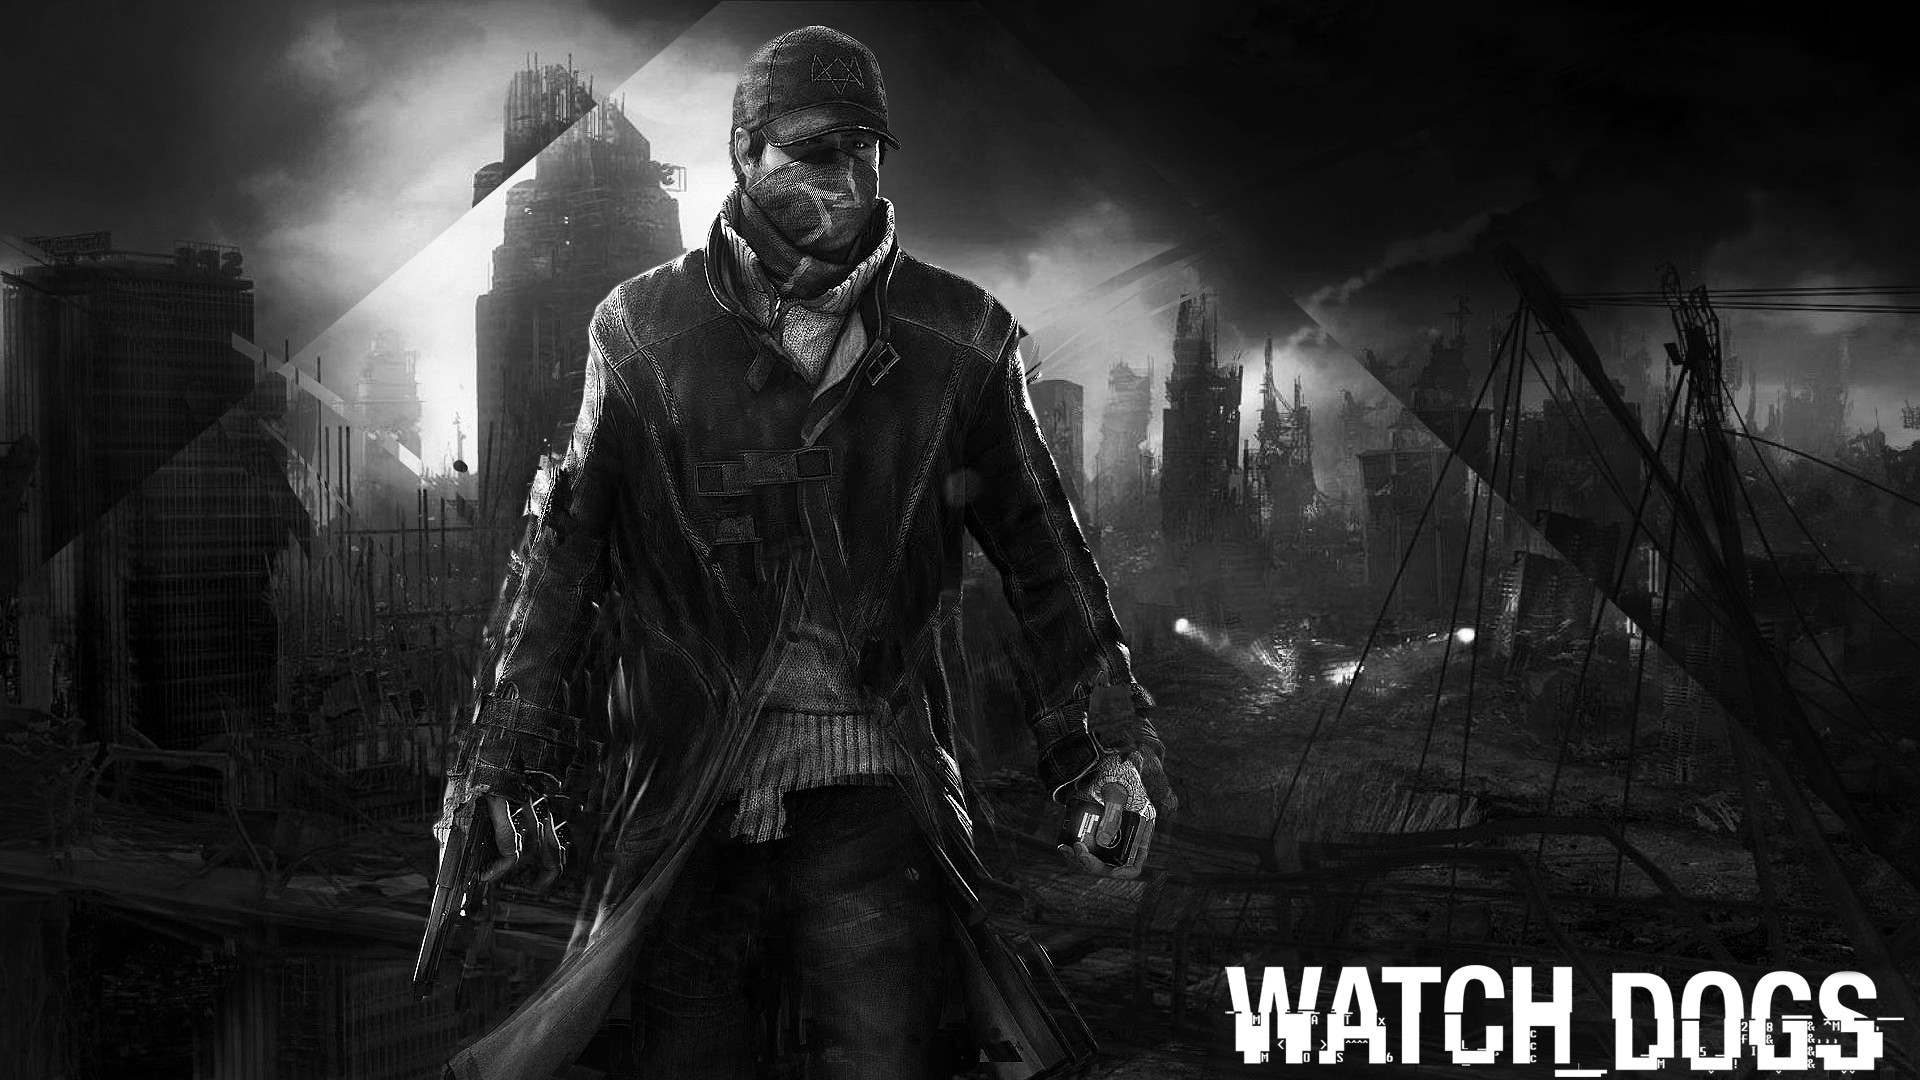 1920x1080 Black Watch Dogs Watch Dogs: the black city wallpapers and images -  wallpapers .